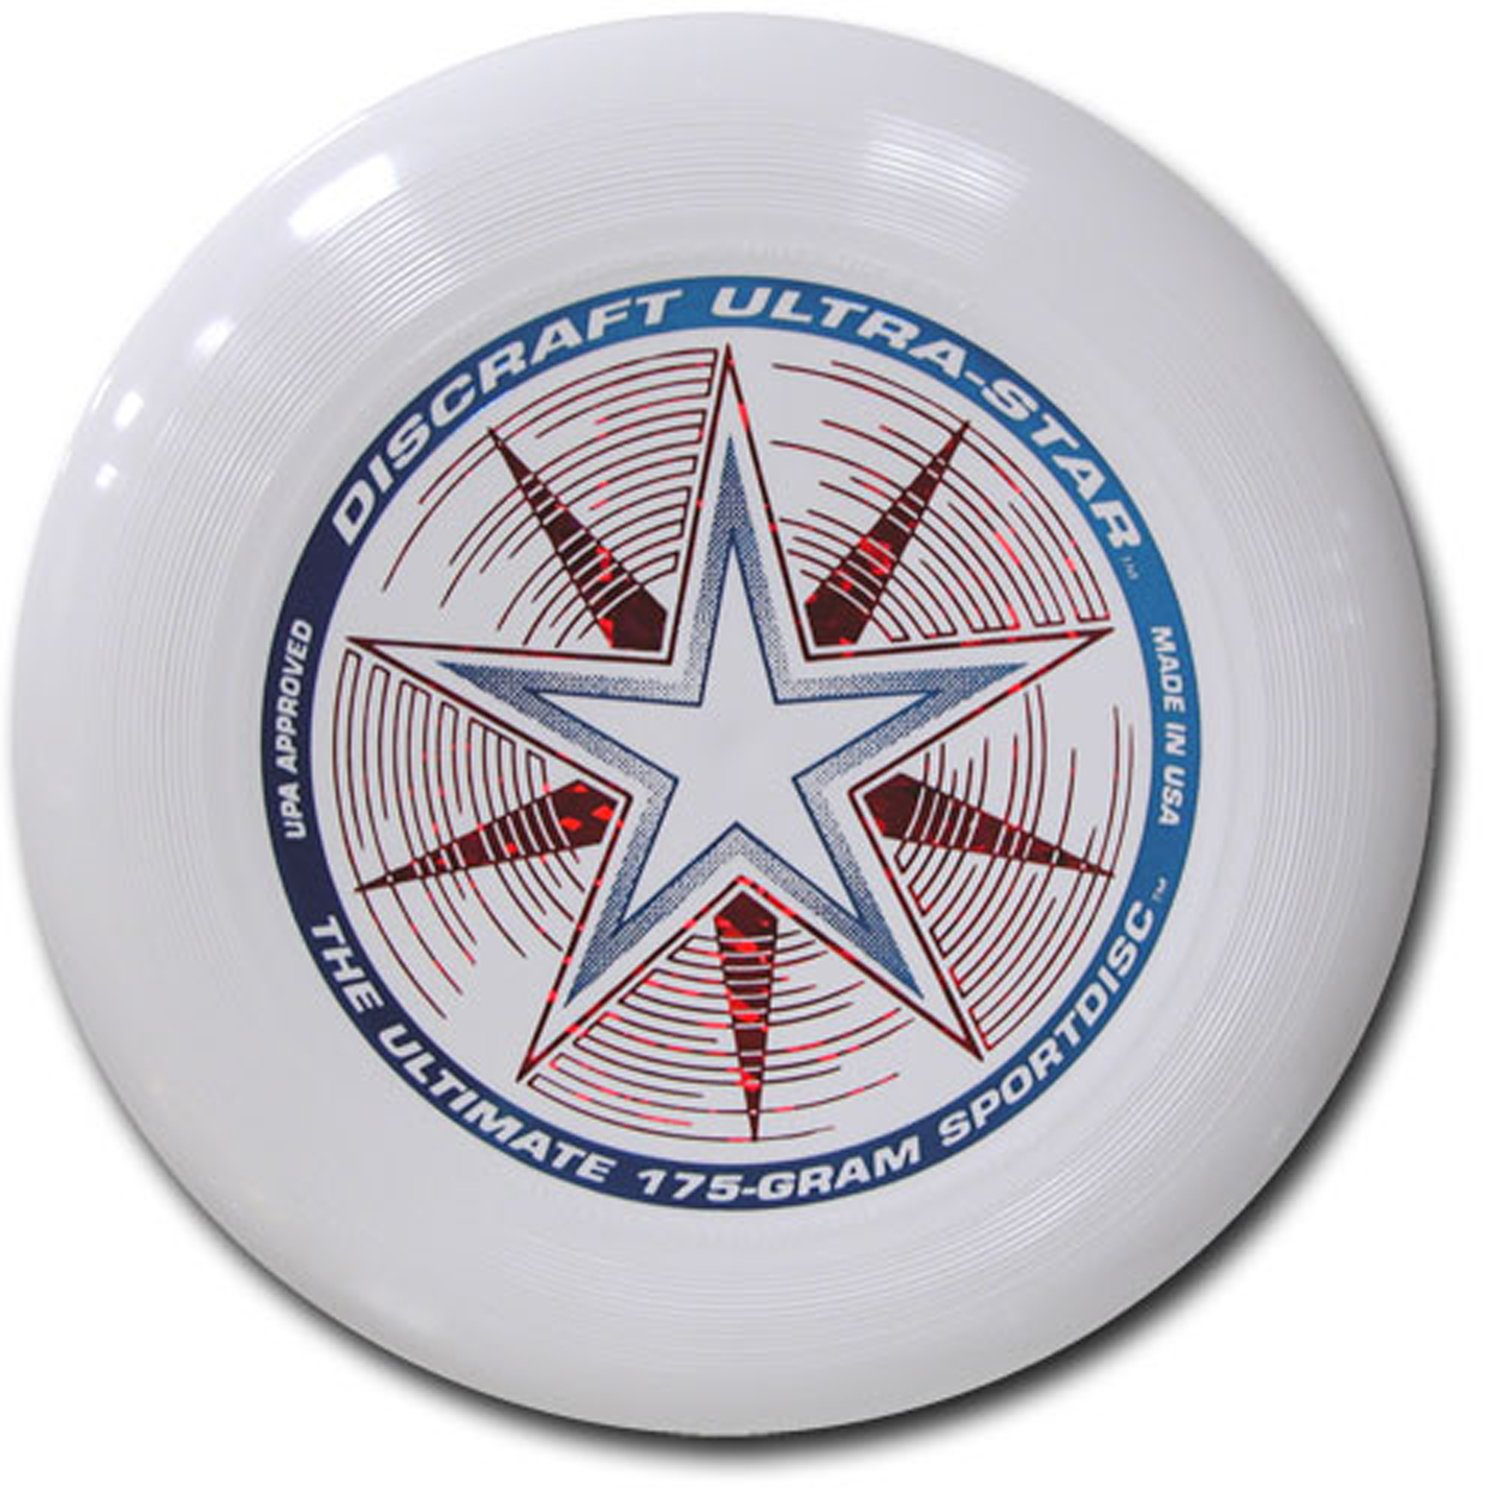 Discraft 175g Ultimate Disc Bundle (3 Discs) Red, White & Pink by Discraft (Image #3)